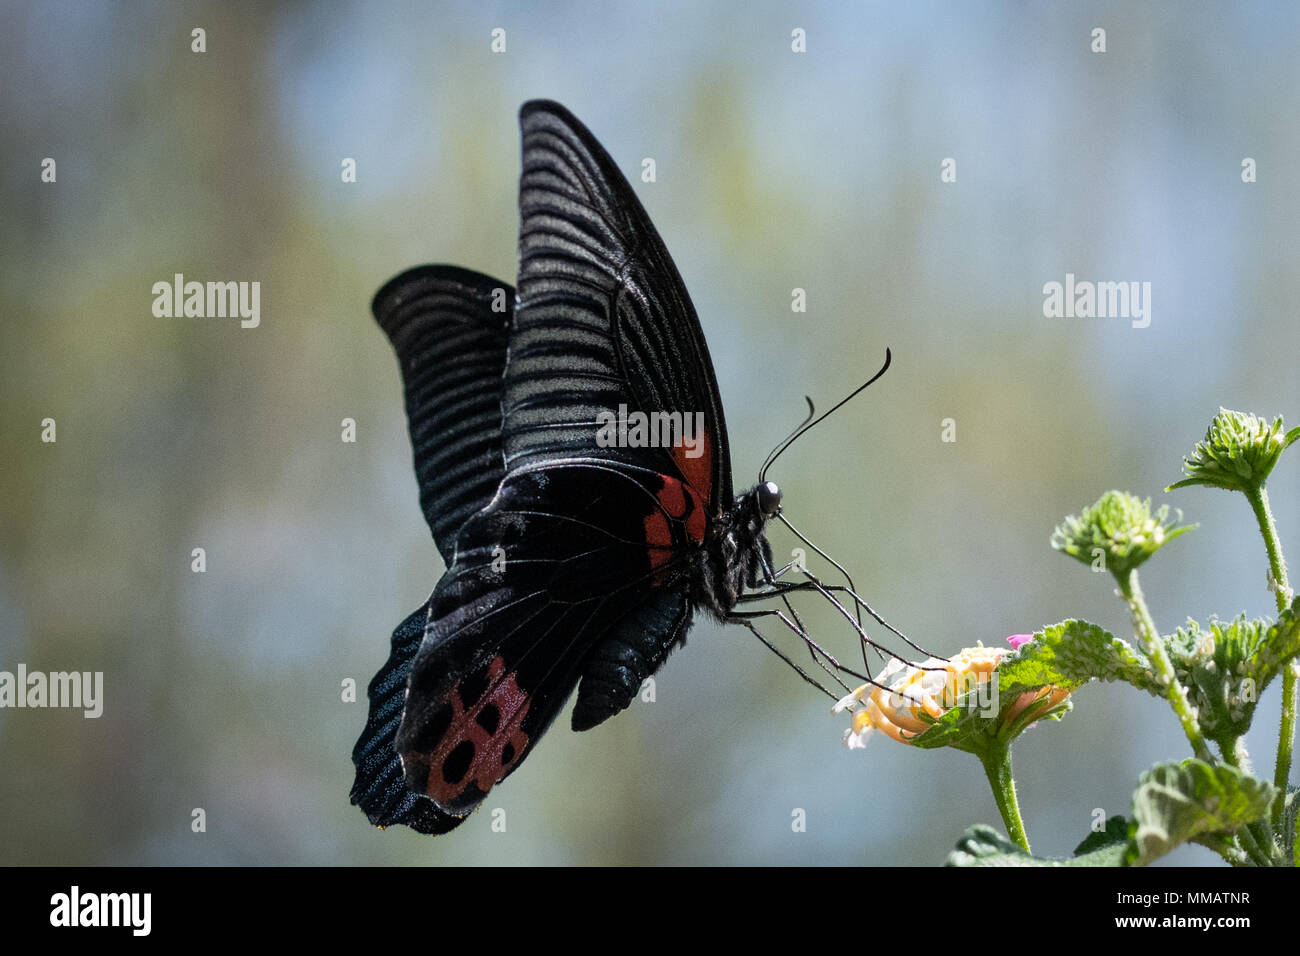 Black butterfly with red spots feeding on nectar - Stock Image